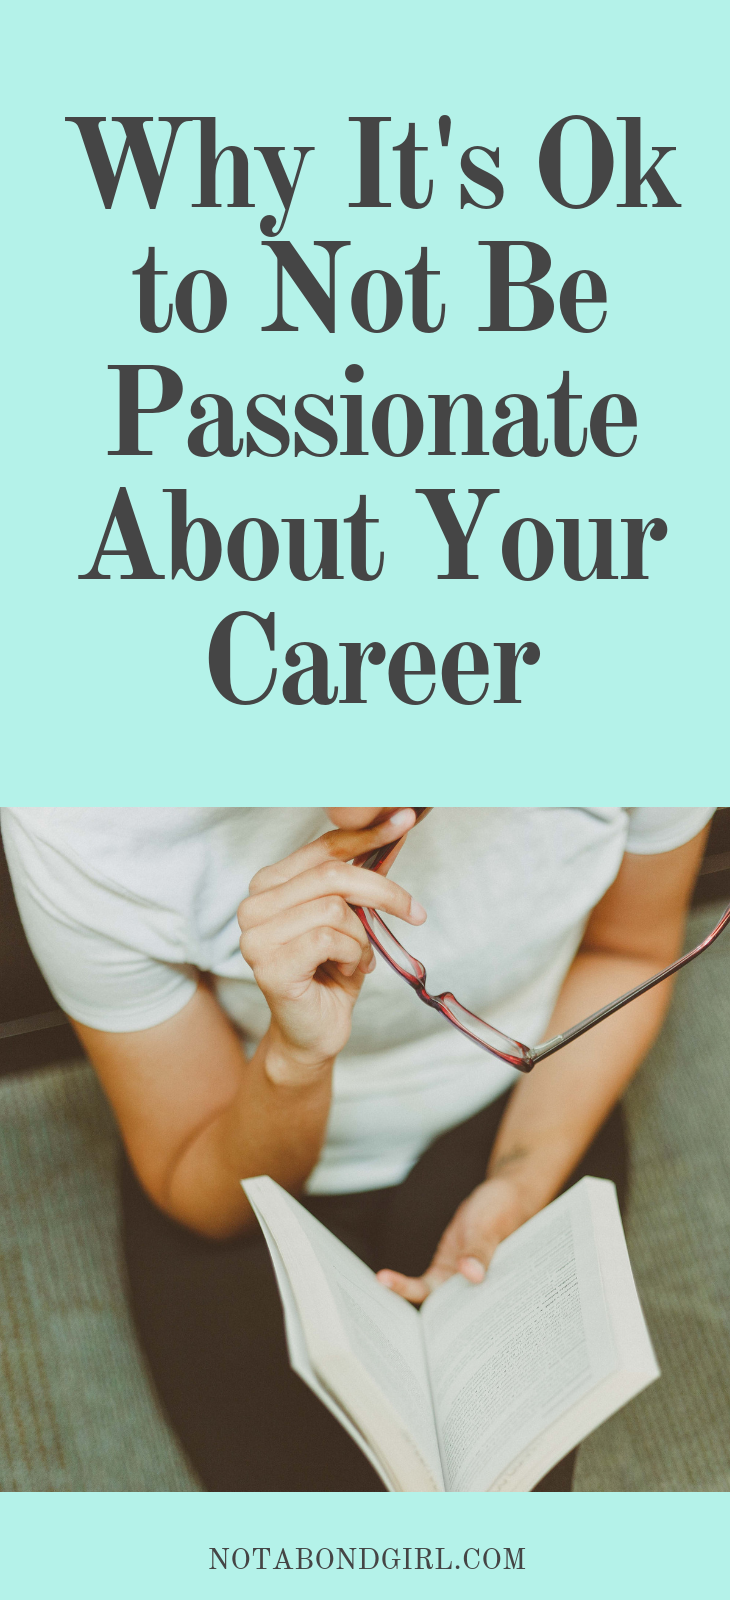 Why It's Ok Not to Be Passionate About Your Career